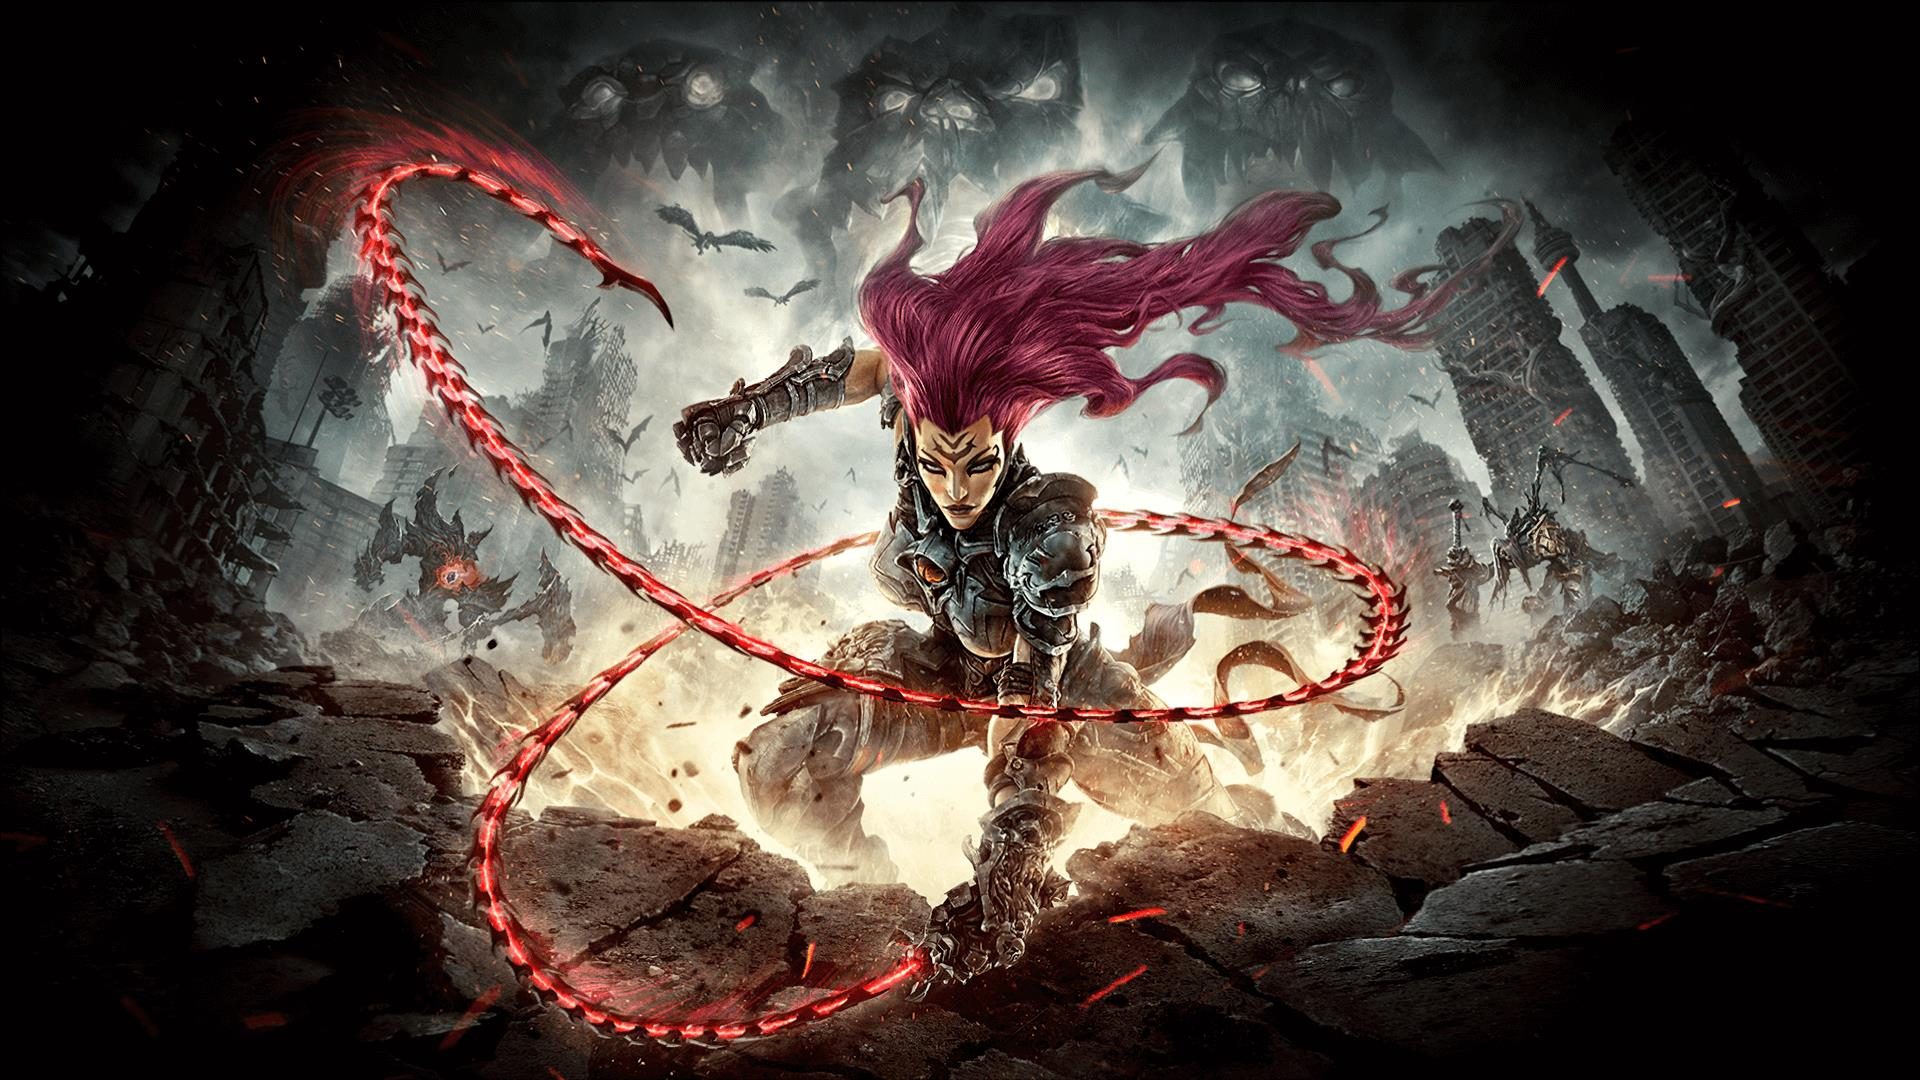 darksiders III darksiders 3 fury collector's edition apocalypse edition release date